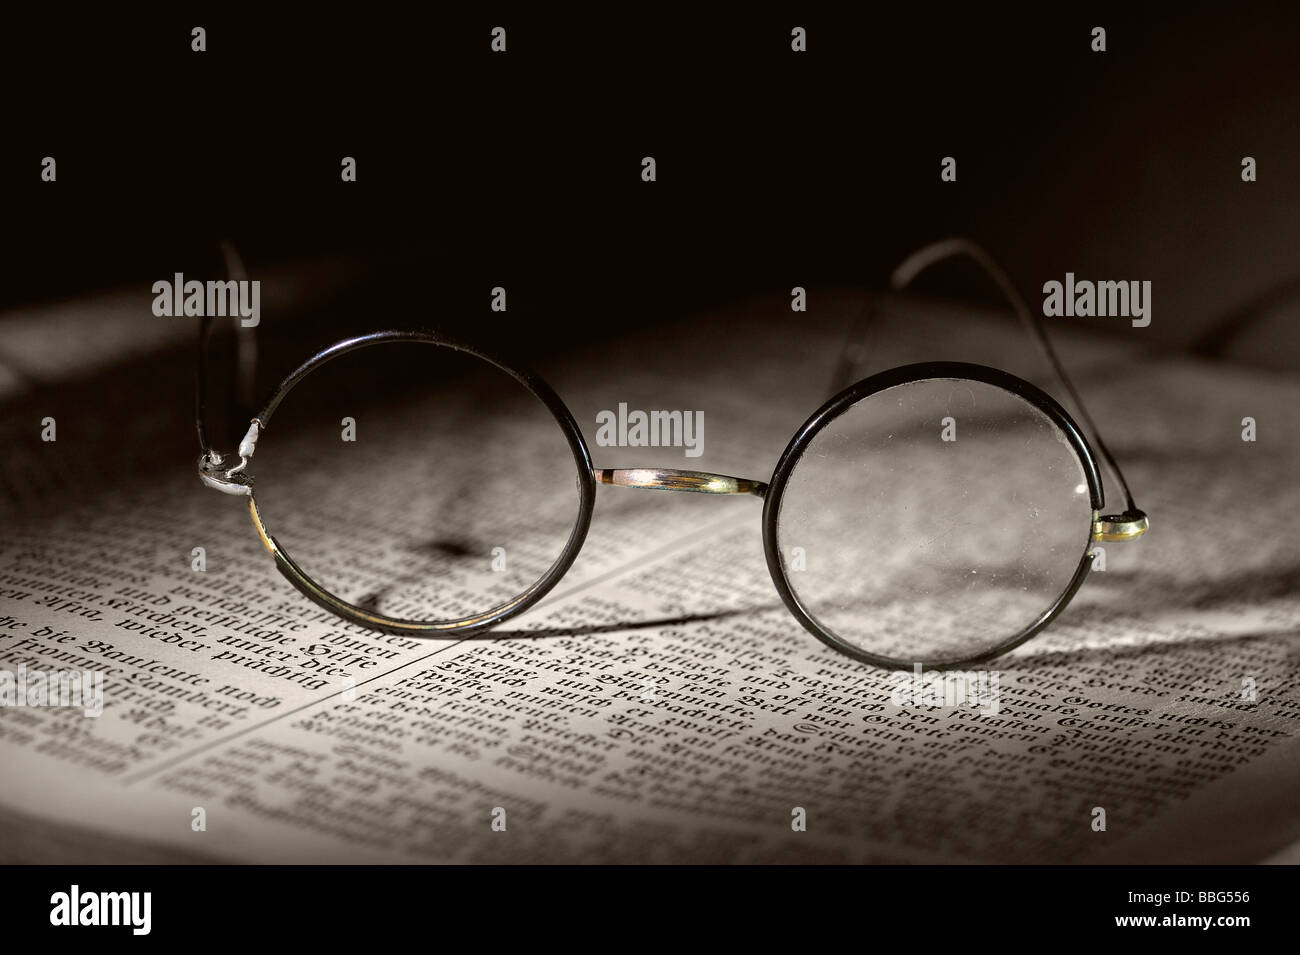 Old reading glasses on old book - Stock Image